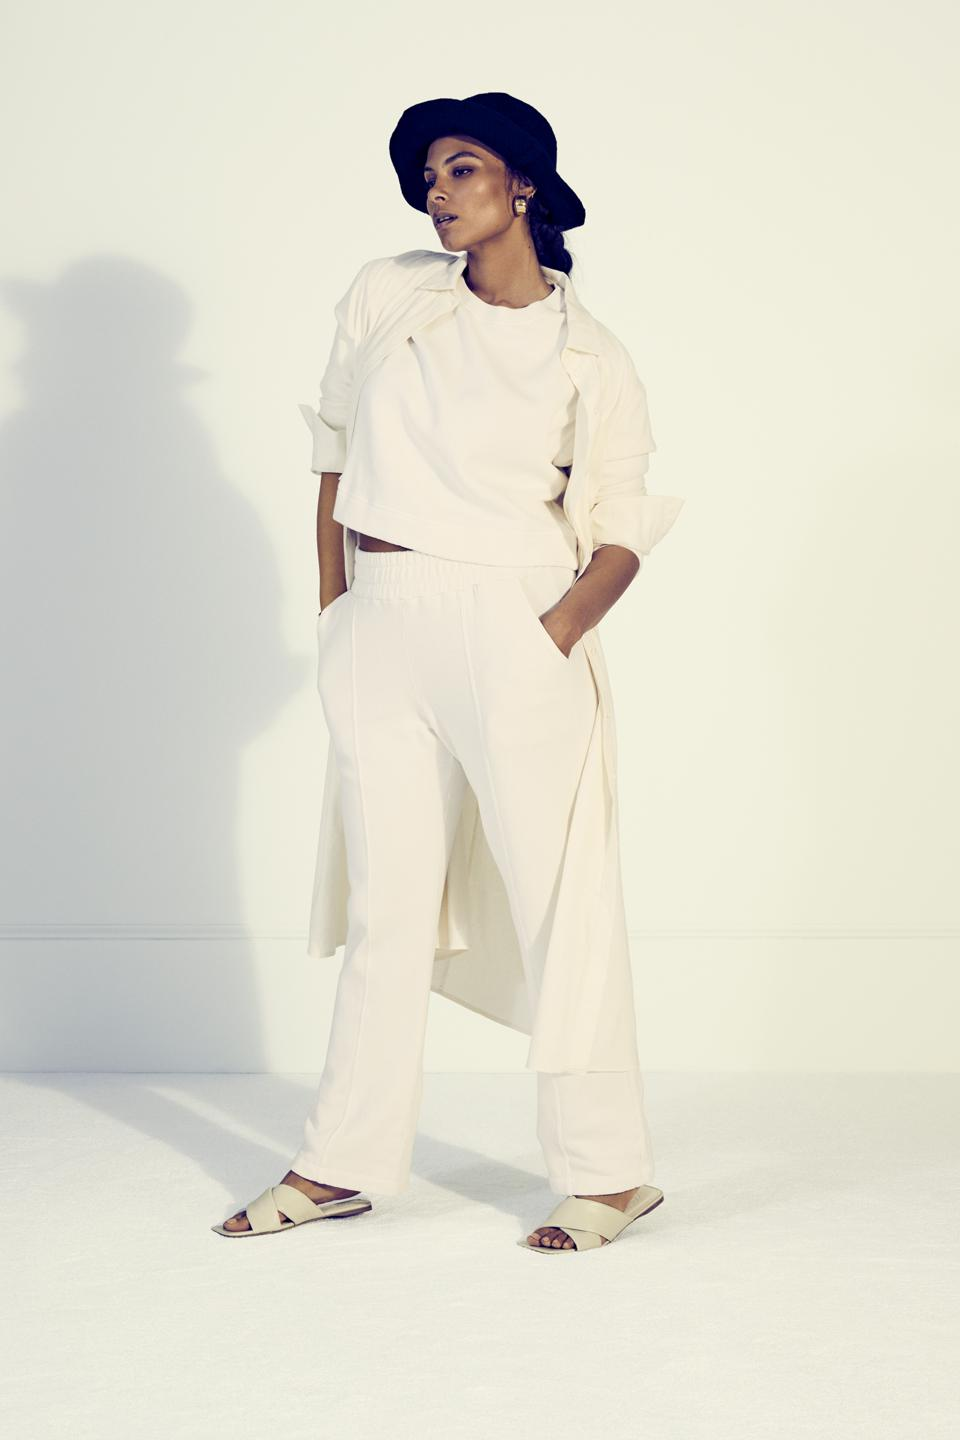 Woman in hat with hands in her pockets wearing cream pants and cropped sweatshirt with sandals.